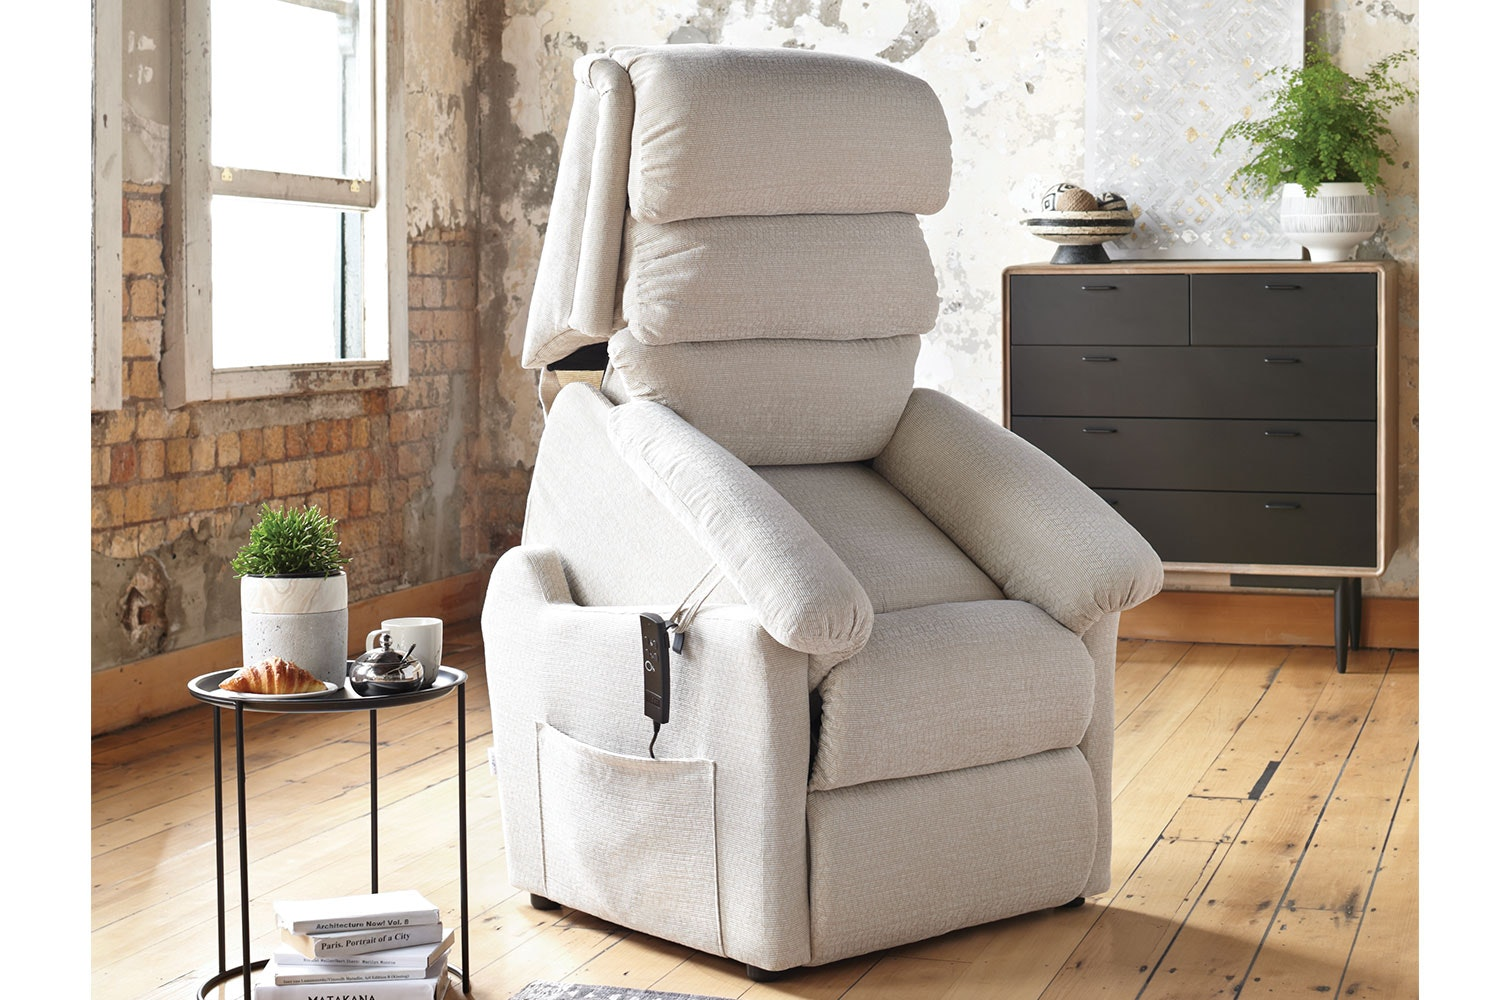 Embassy Luxury Lift Chair by La-Z-Boy